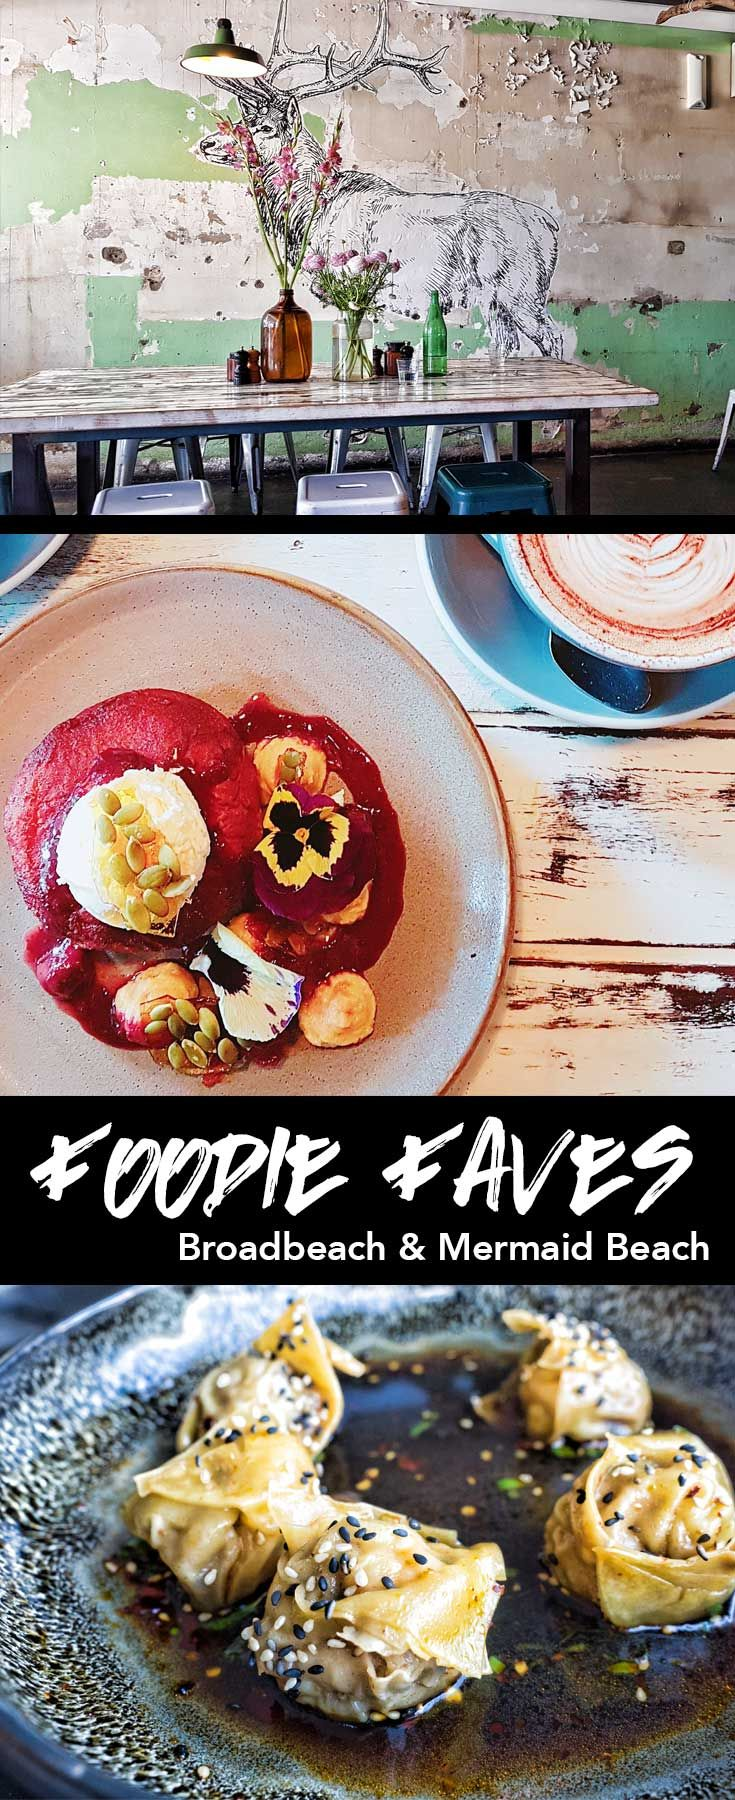 Top cafes you need to try in Broadbeach on the Gold Coast, Australia via @2aussietravellers